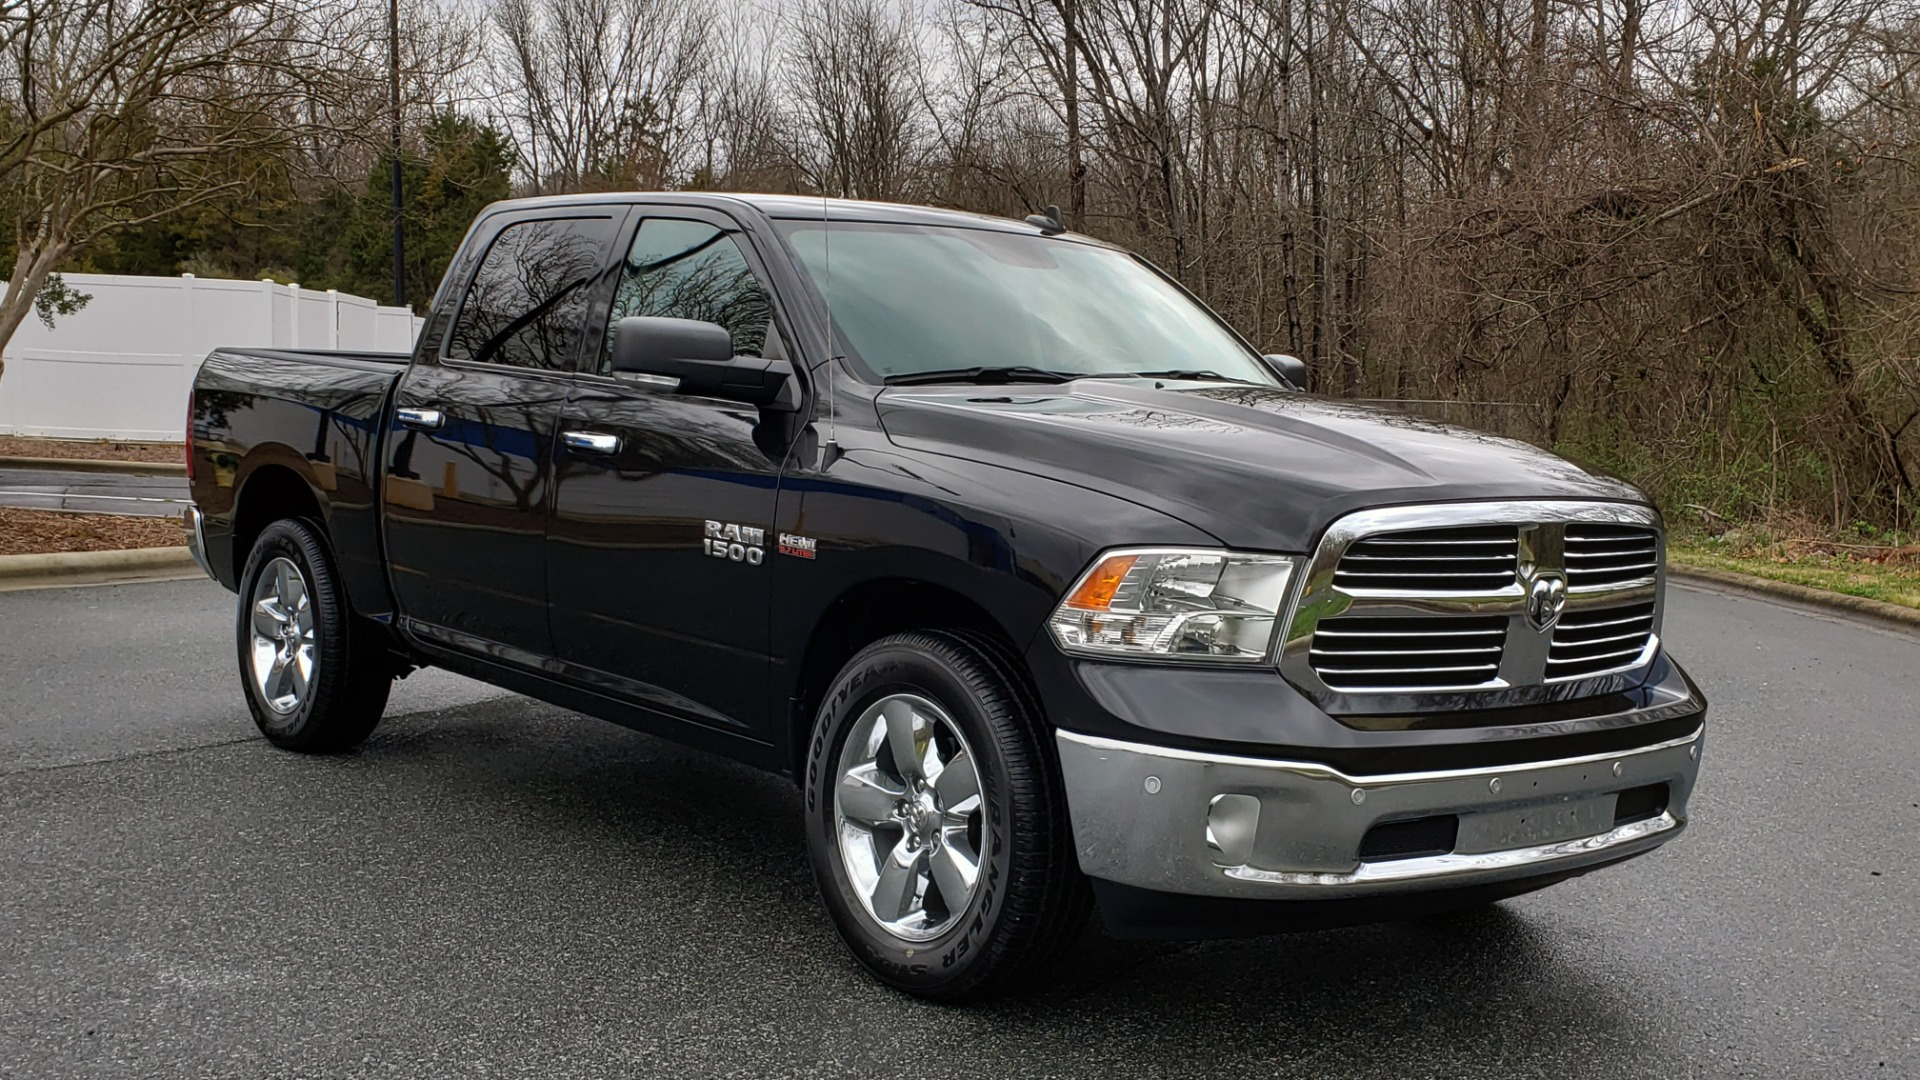 Used 2016 Ram 1500 BIG HORN 5.7L HEMI CREW CAB / HTD STS / NAV / REAVIEW for sale Sold at Formula Imports in Charlotte NC 28227 4